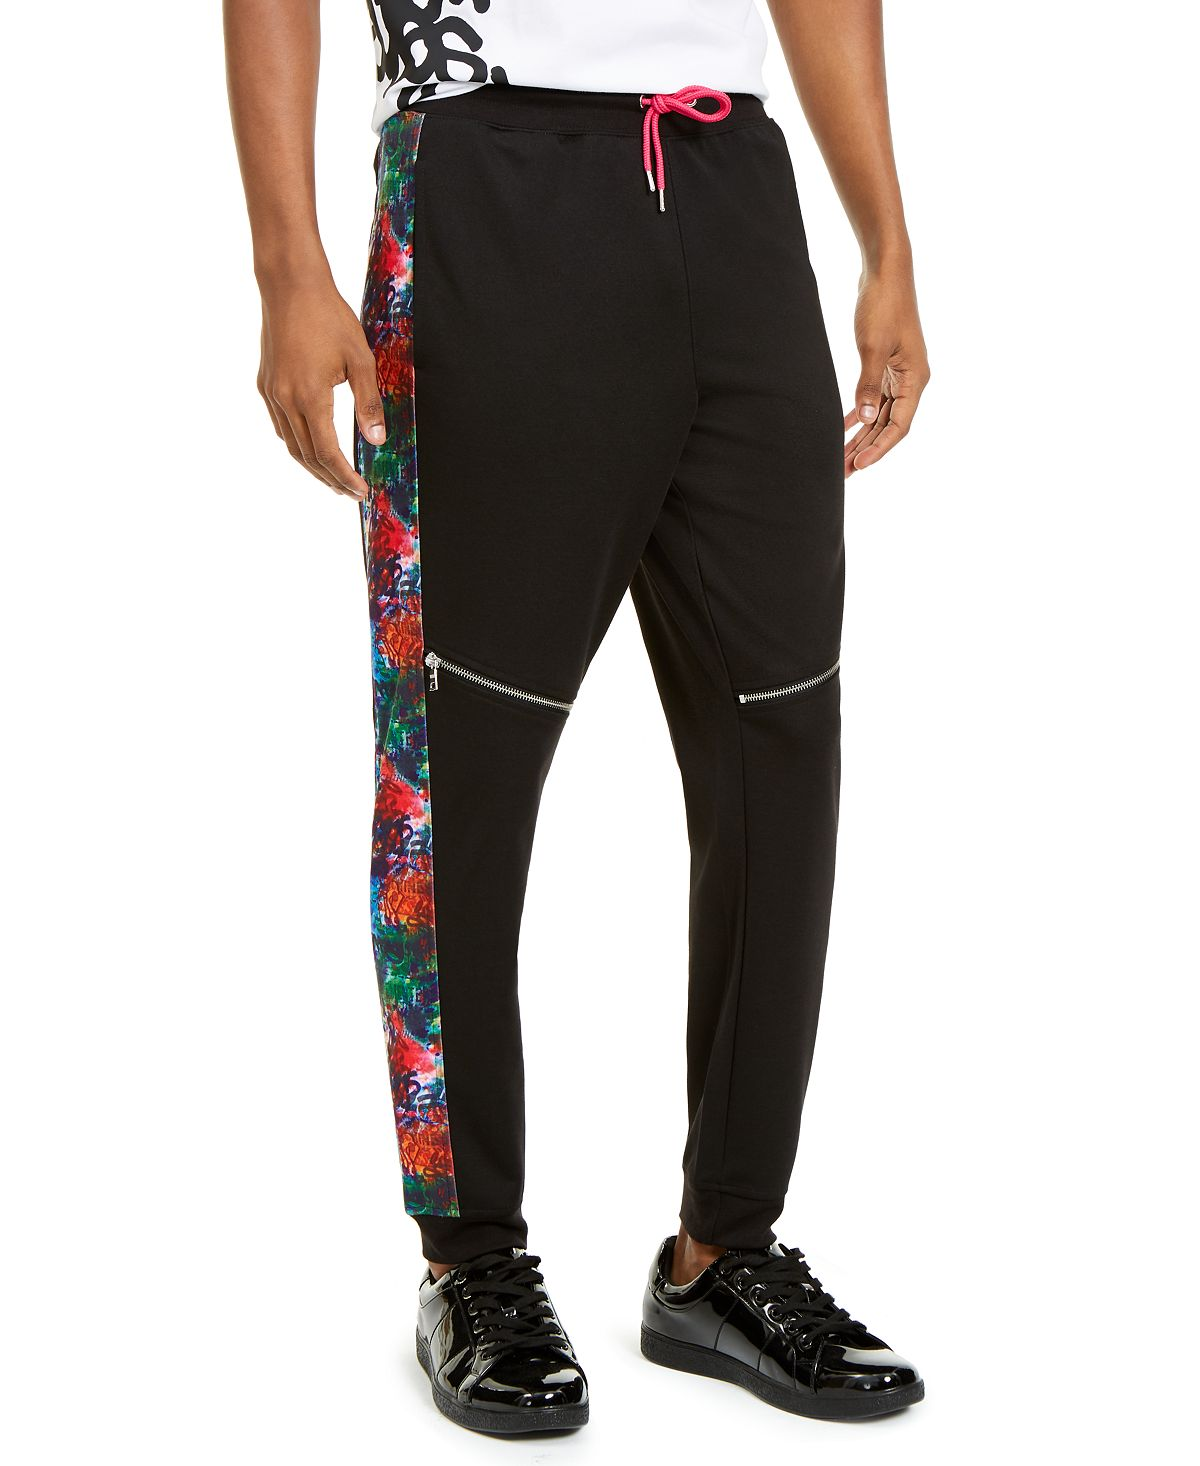 Inc International Concepts Inc Spotlight Jogger Pants Deep Black